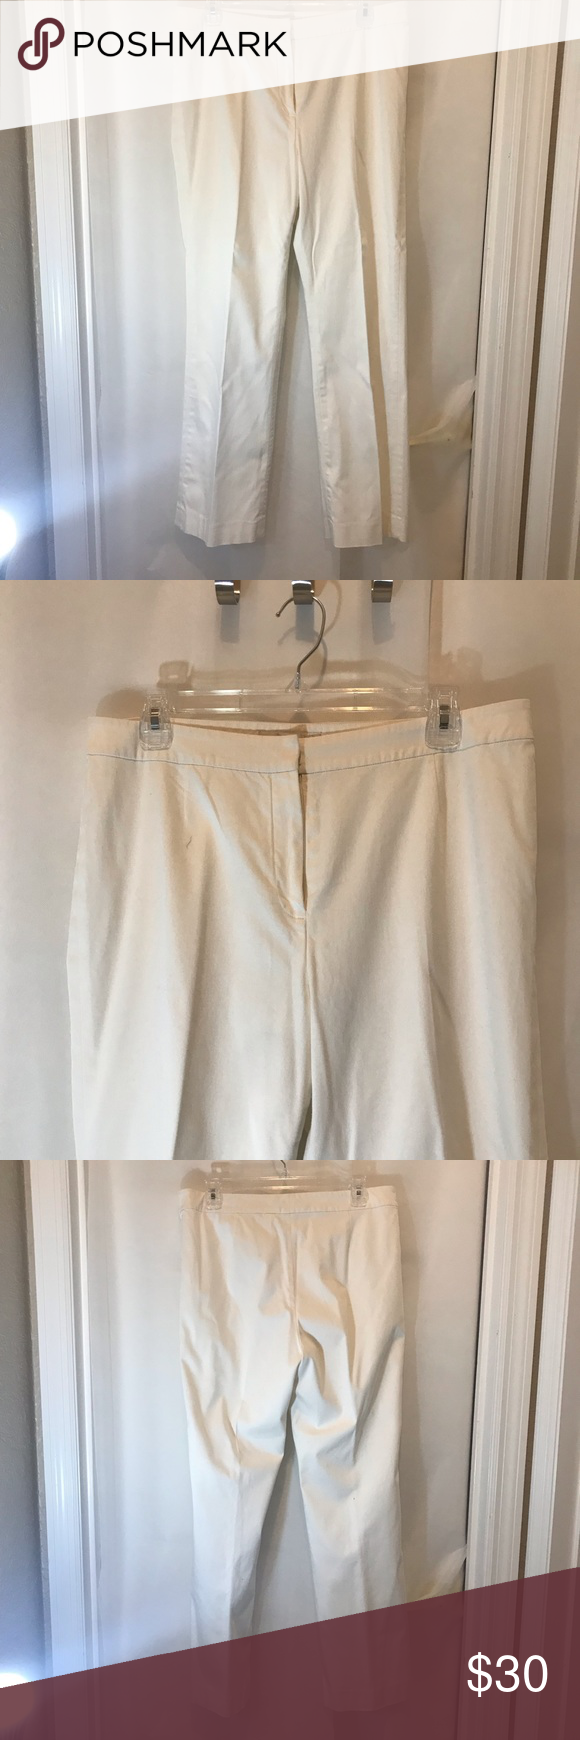 "Evan Picone white slacks, fully lined 8P White slacks with silky white lining, size 8P, run a little big. Recently dry cleaned. 28"" inseam. Evan Picone Pants #whiteslacks Evan Picone white slacks, fully lined 8P White slacks with silky white lining, size 8P, run a little big. Recently dry cleaned. 28"" inseam. Evan Picone Pants #whiteslacks Evan Picone white slacks, fully lined 8P White slacks with silky white lining, size 8P, run a little big. Recently dry cleaned. 28"" inseam. Evan Picone #whiteslacks"